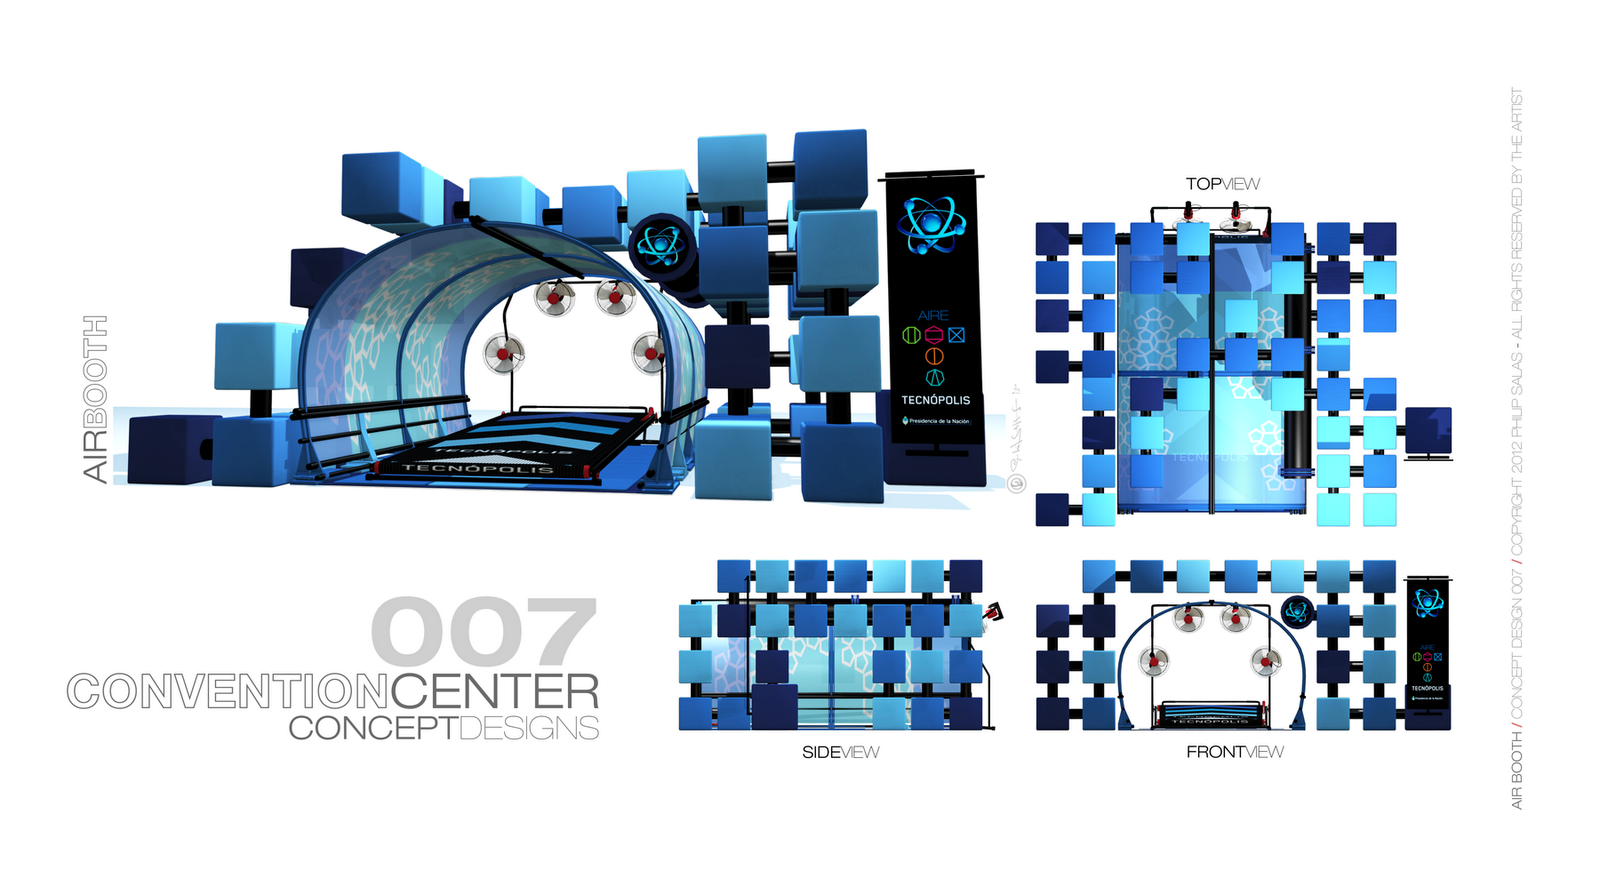 Sankhya Tribe: Convention Center / booth design series